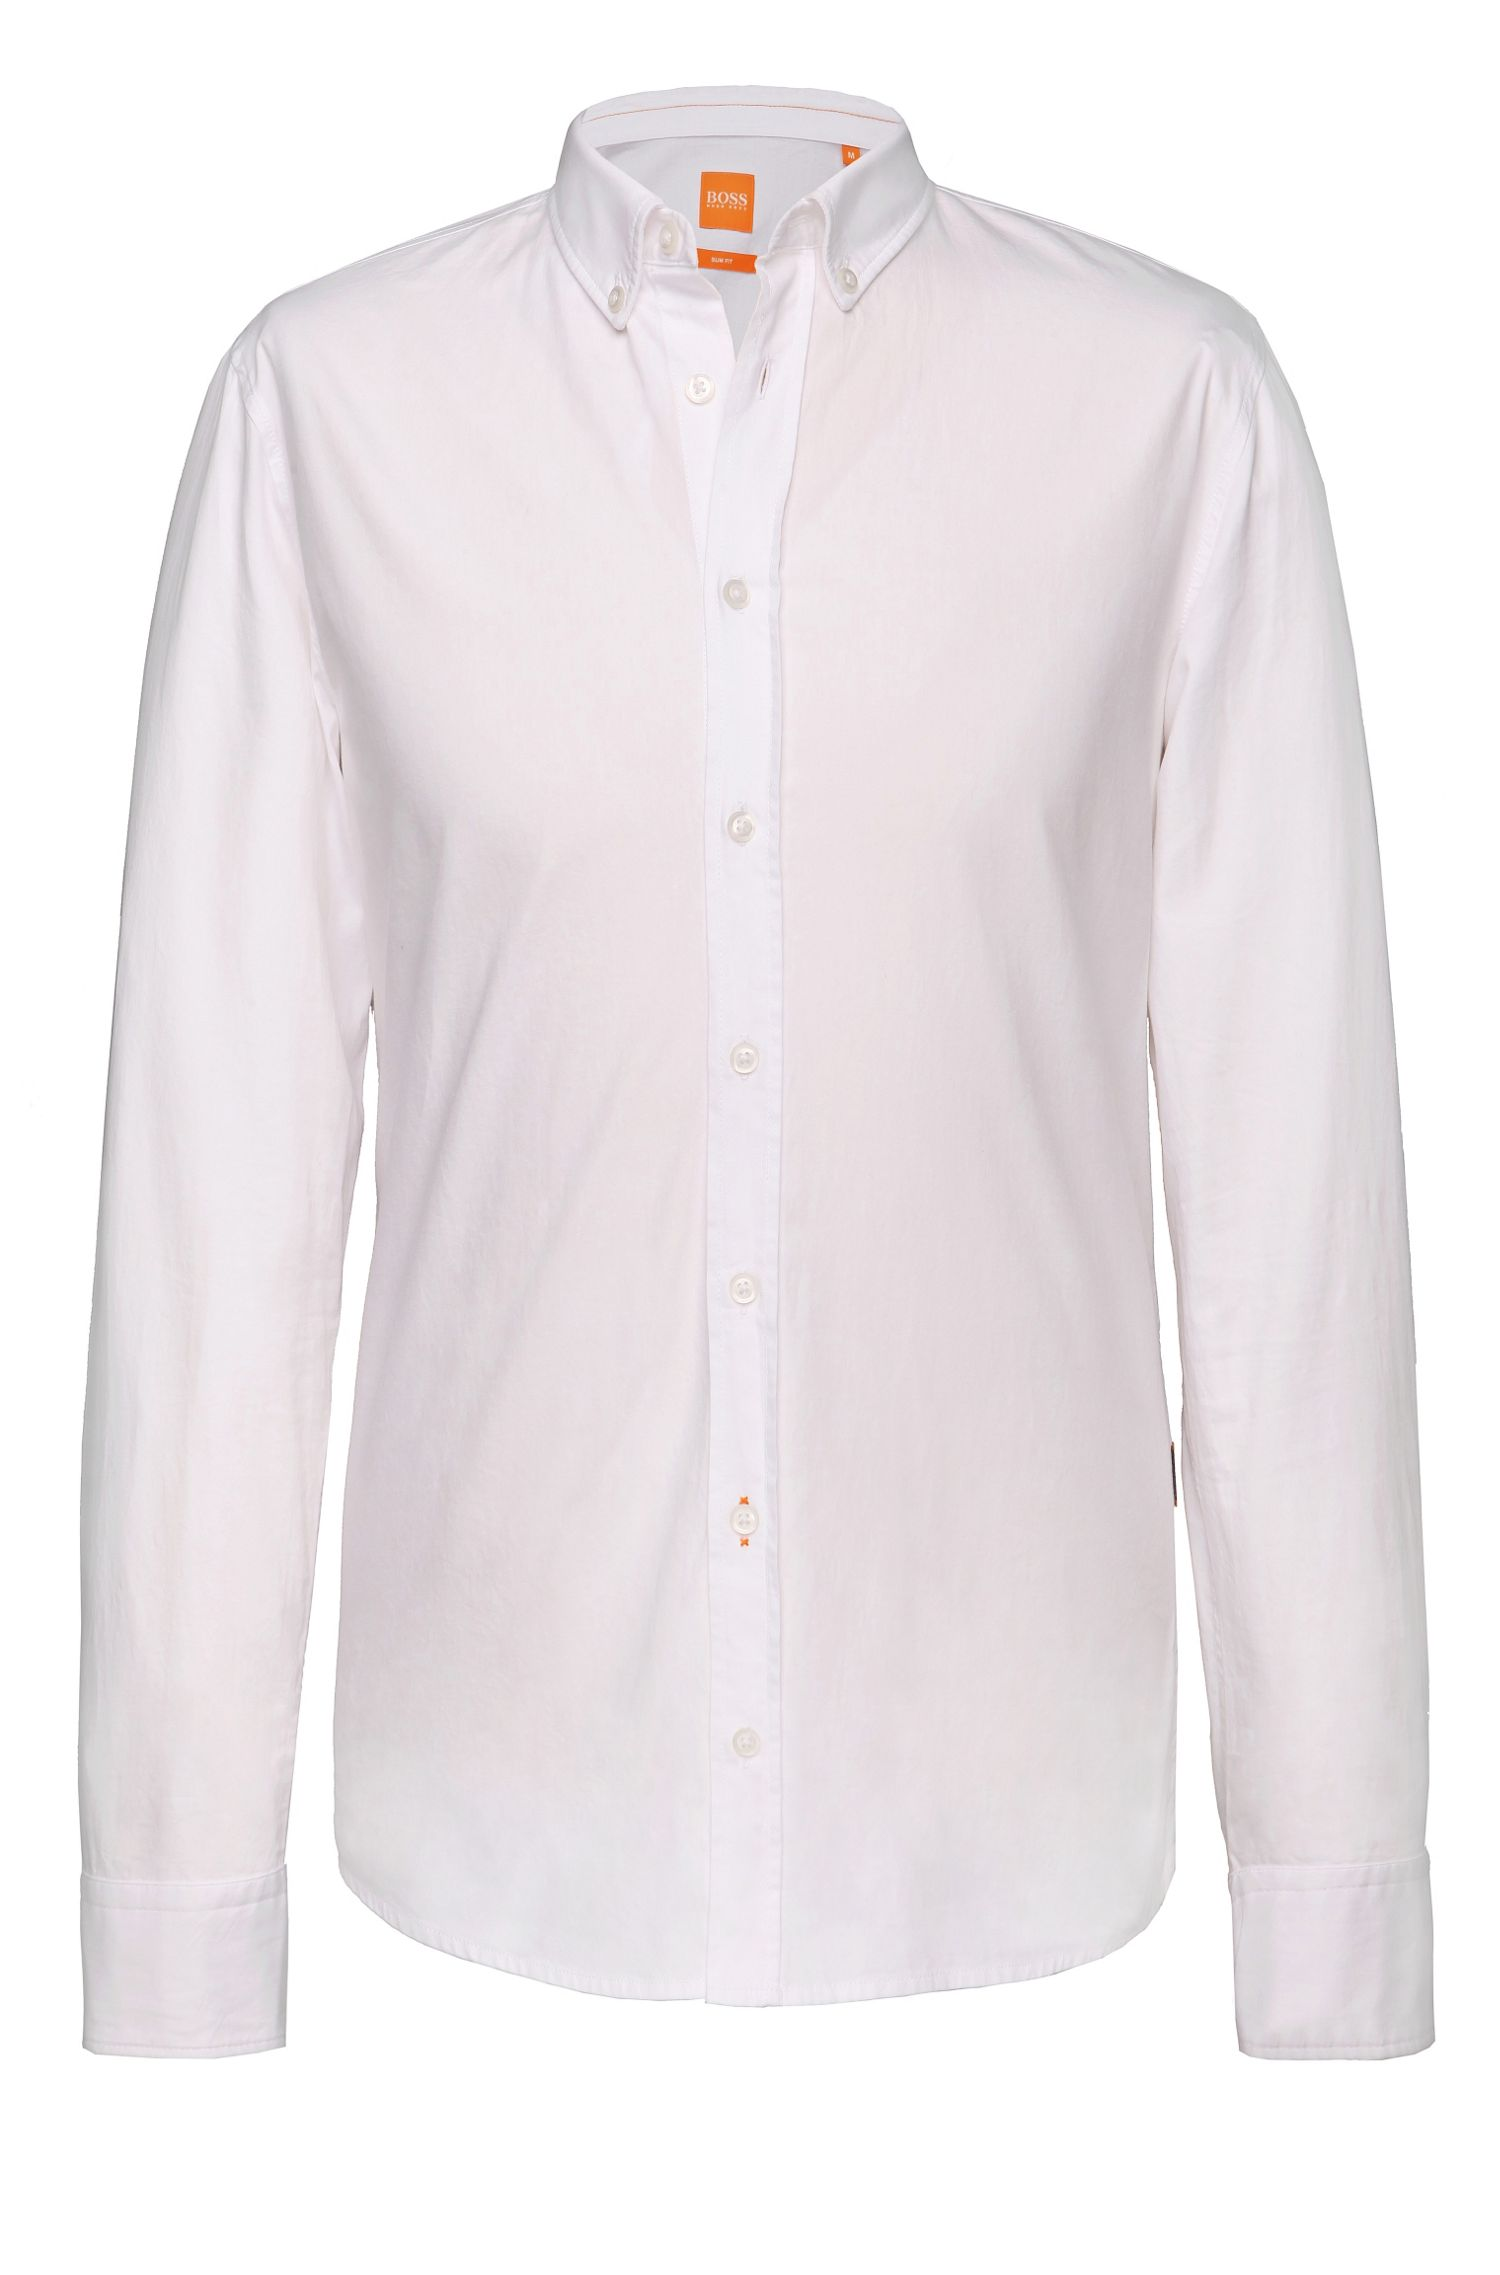 Camicia slim fit con polsini e colletto a rovescio by BOSS Orange, Bianco